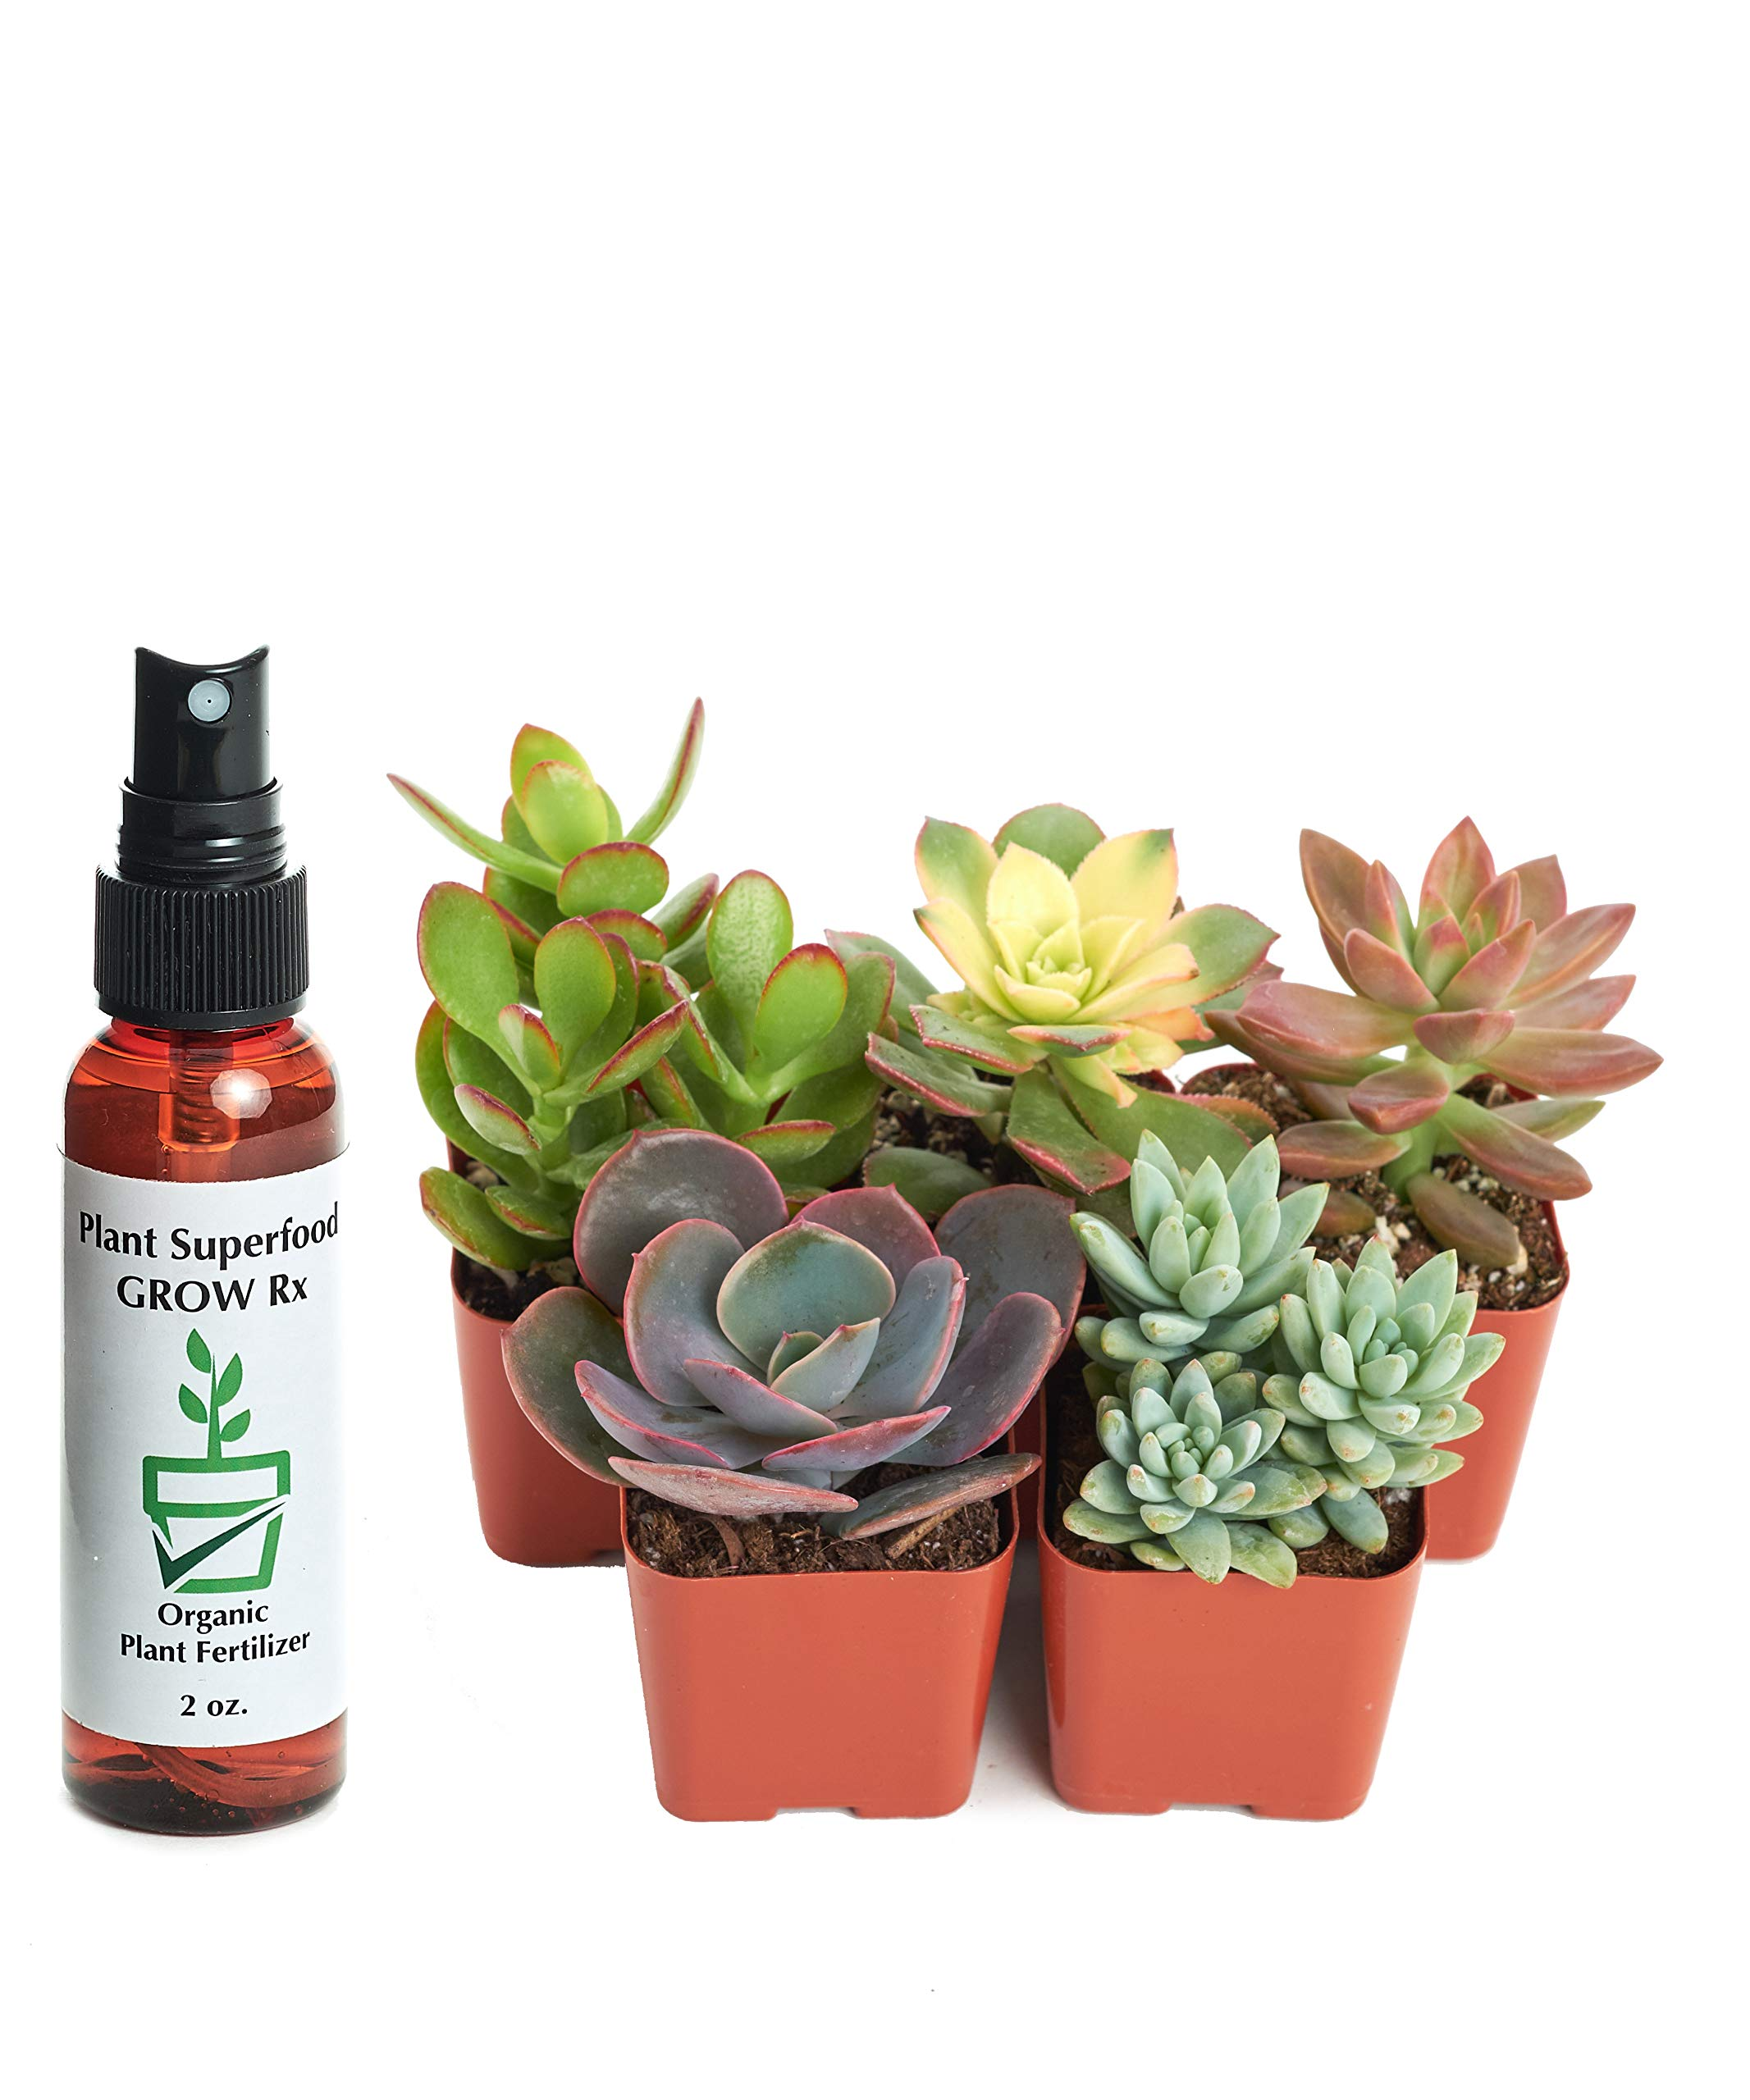 Shop Succulents | Unique Collection of Live Succulent Plants, Hand Selected Variety Pack of Mini Succulents w/Organic Plant Food/Fertilizer | Collection of 5